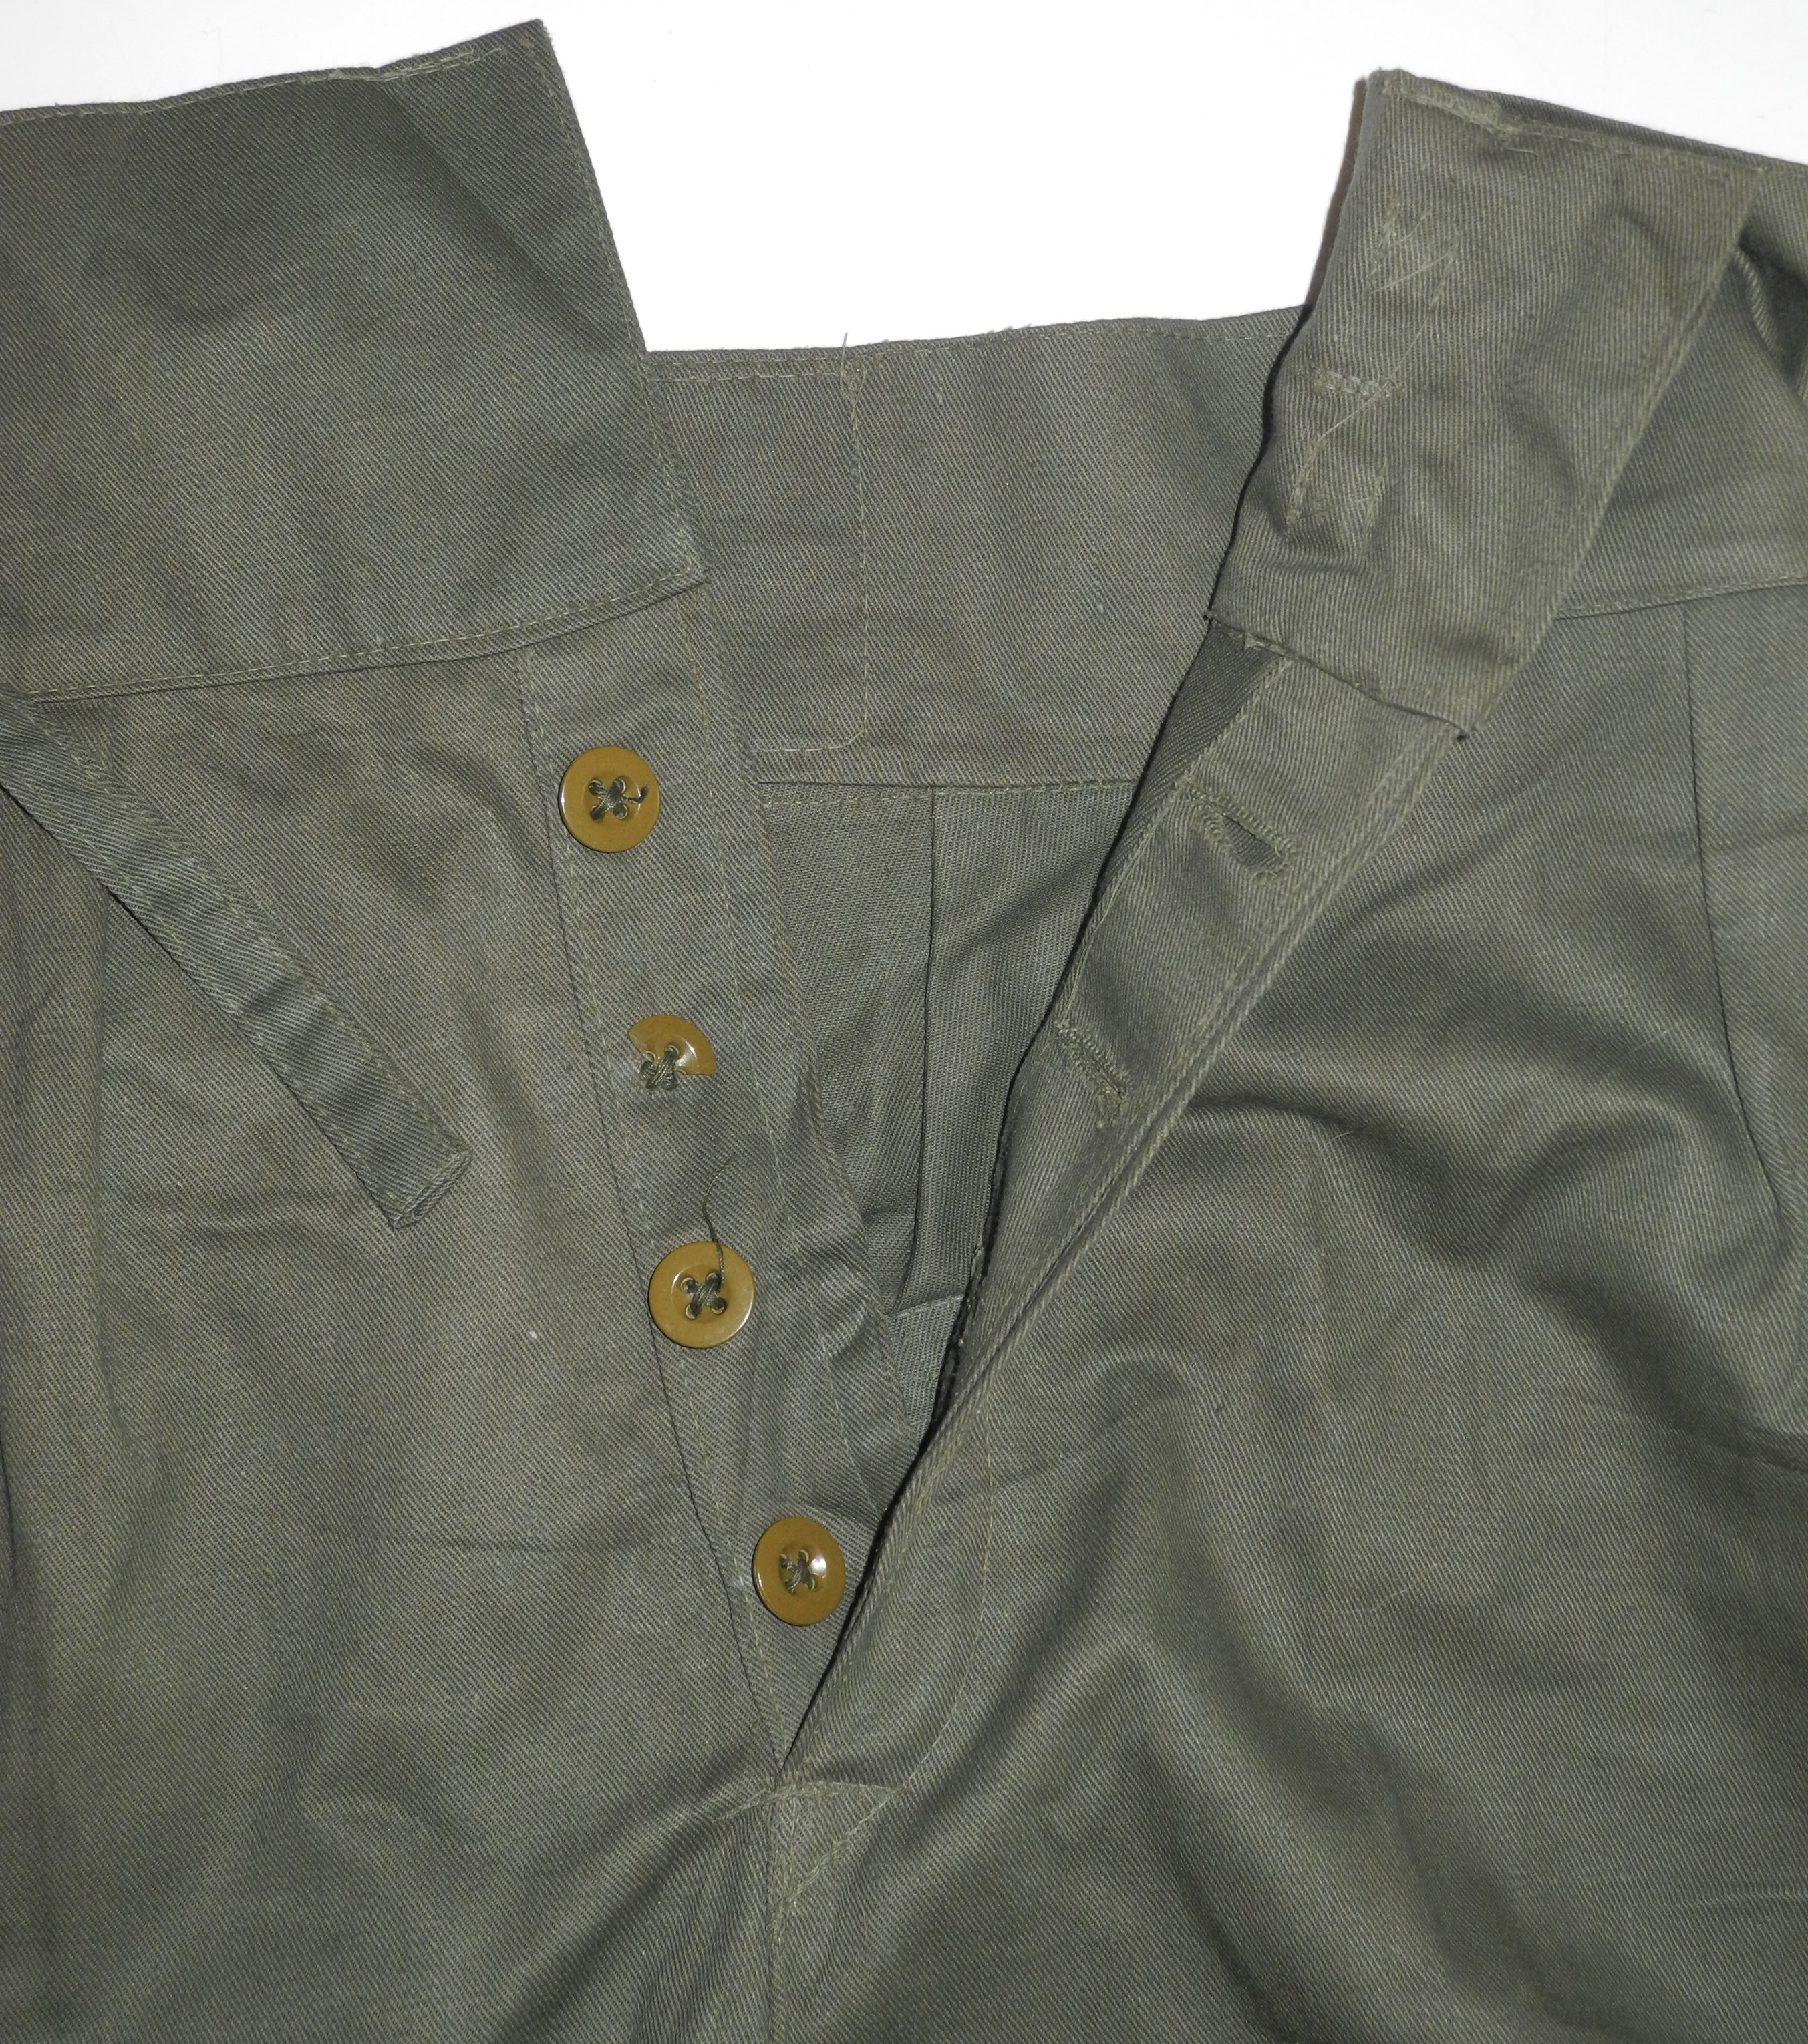 Jungle Green shorts 1944 dated